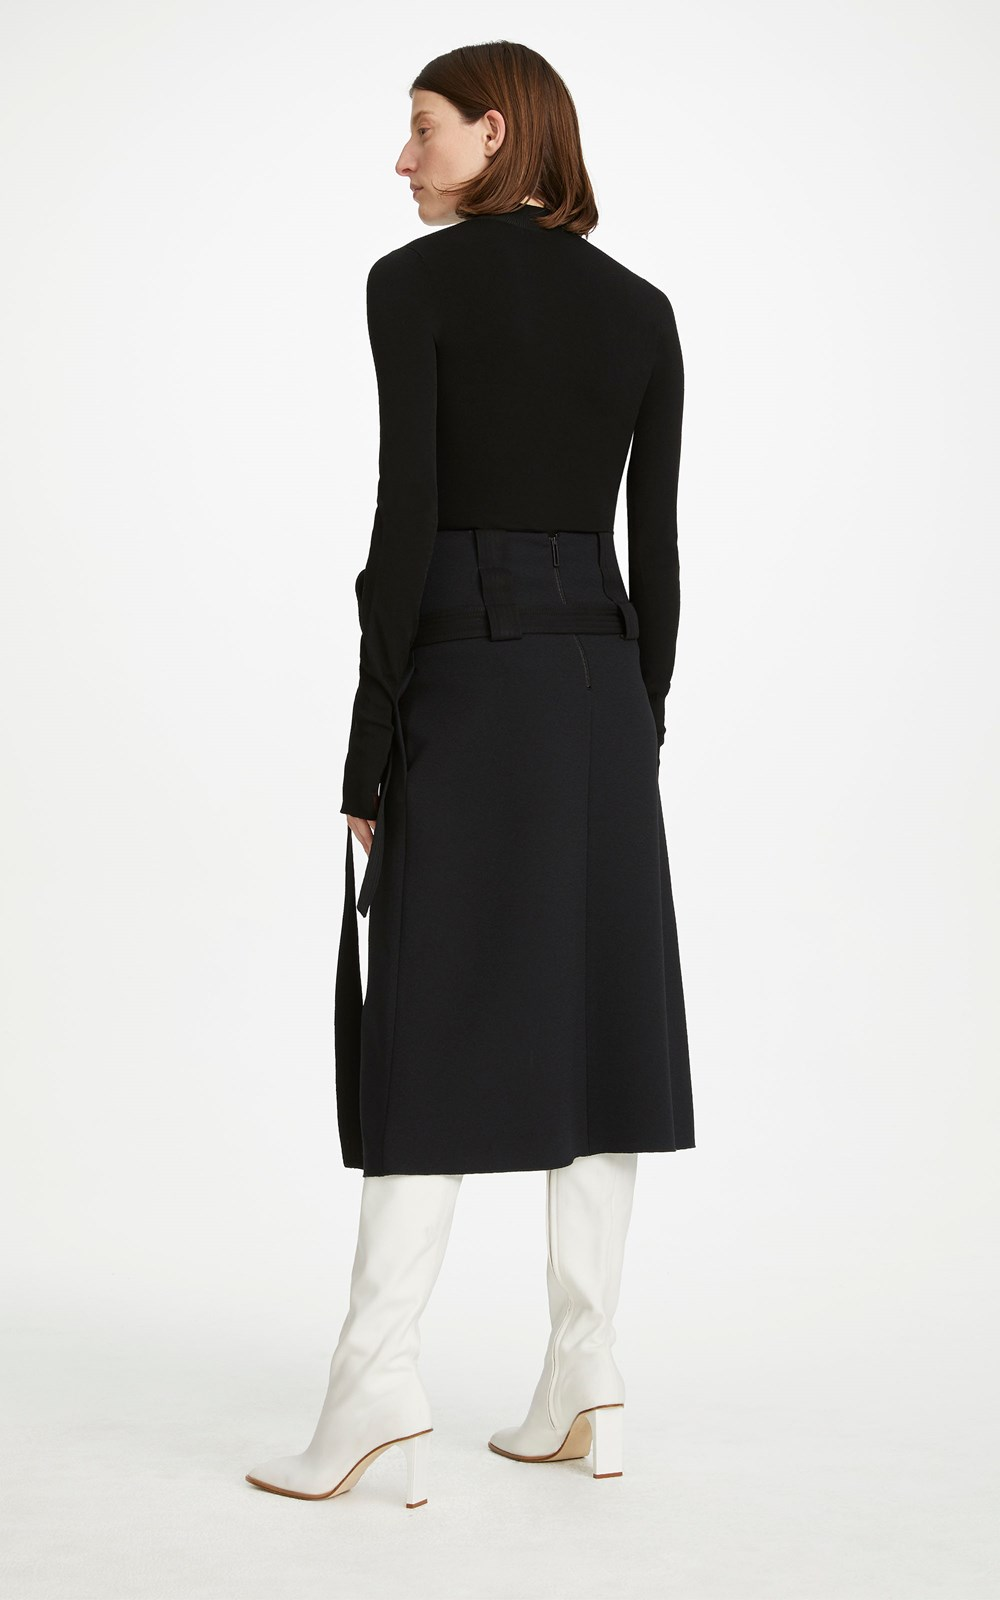 Skirts  | INTERCHANGE BELTED SKIRT